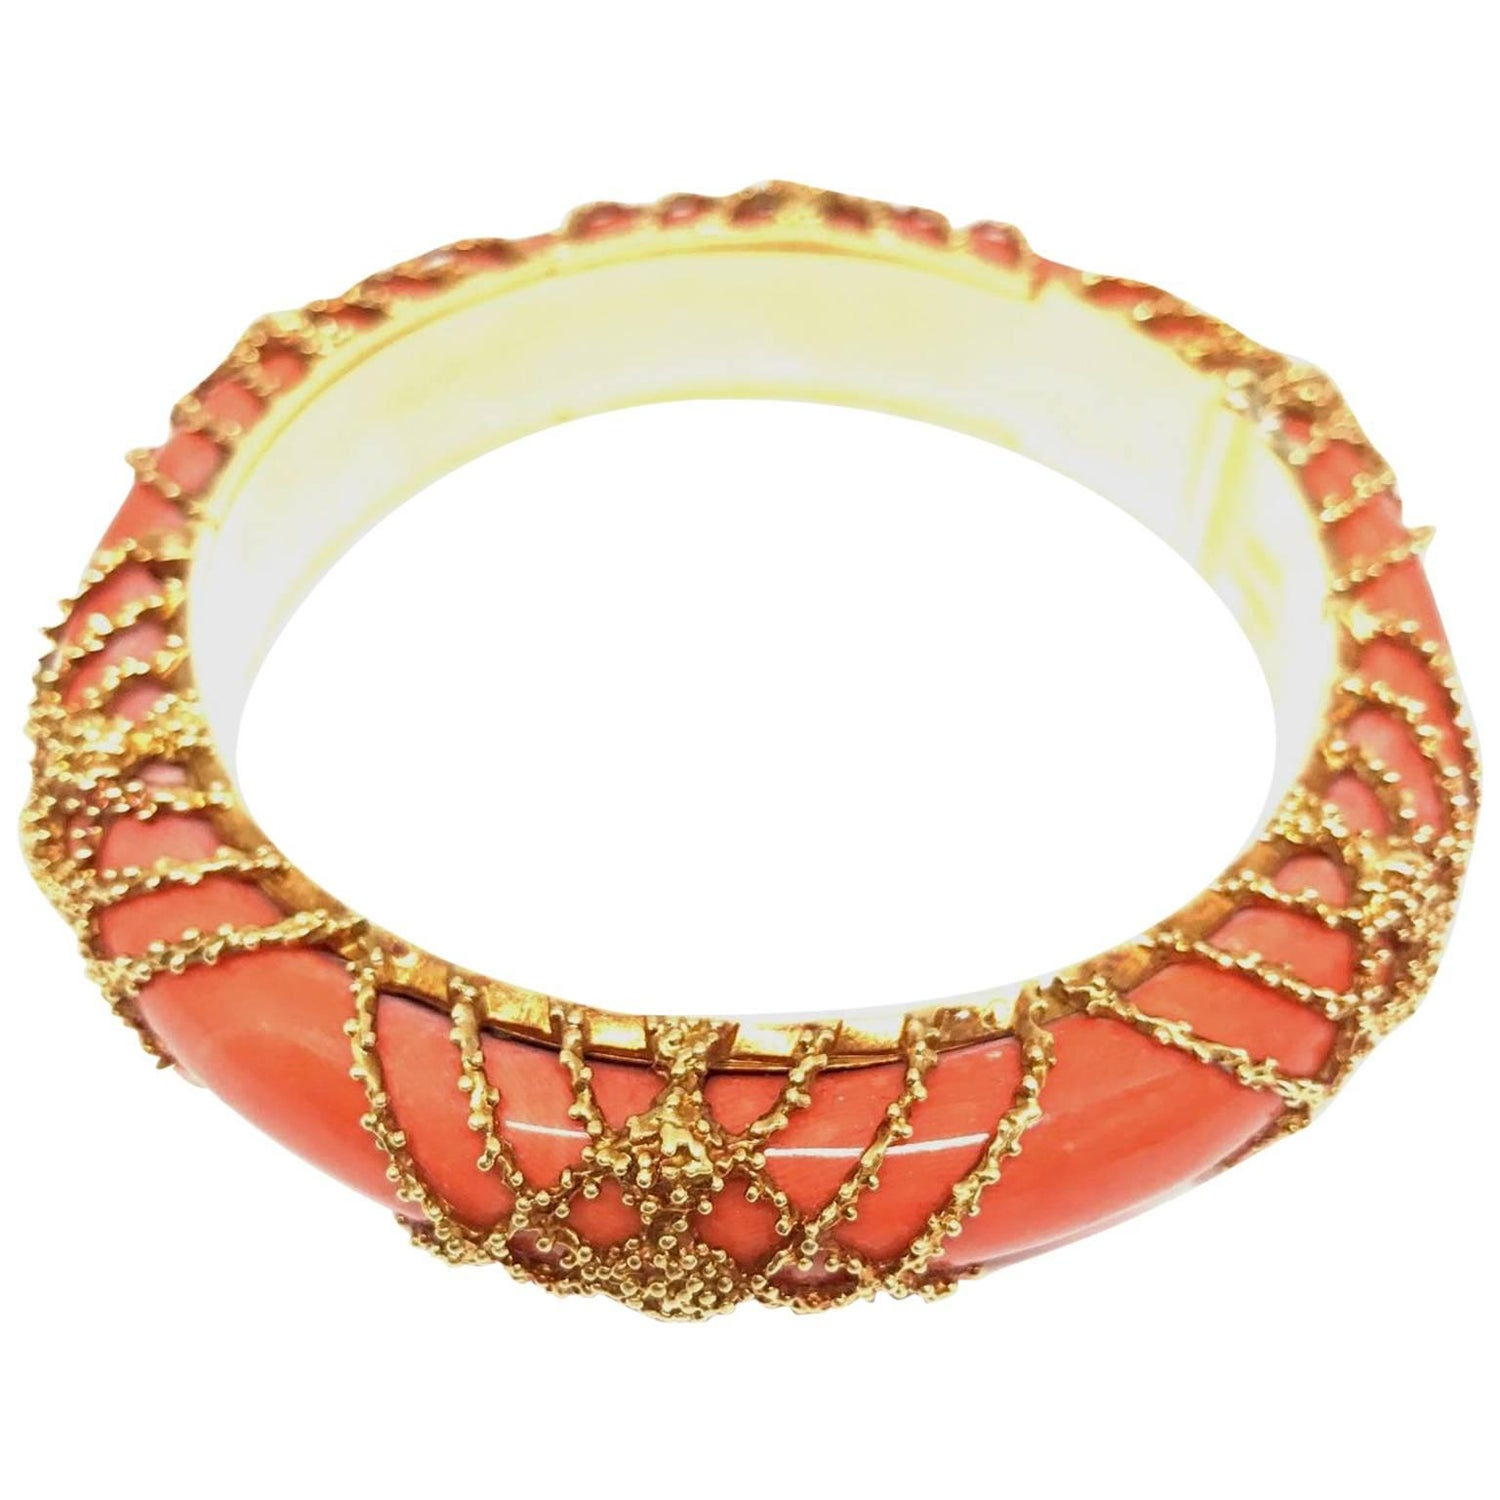 Yafa signed jewels new york ny 1stdibs page 4 - 1960s Van Cleef And Arpels Paris Coral Gold Bangle Bracelet For Sale At 1stdibs